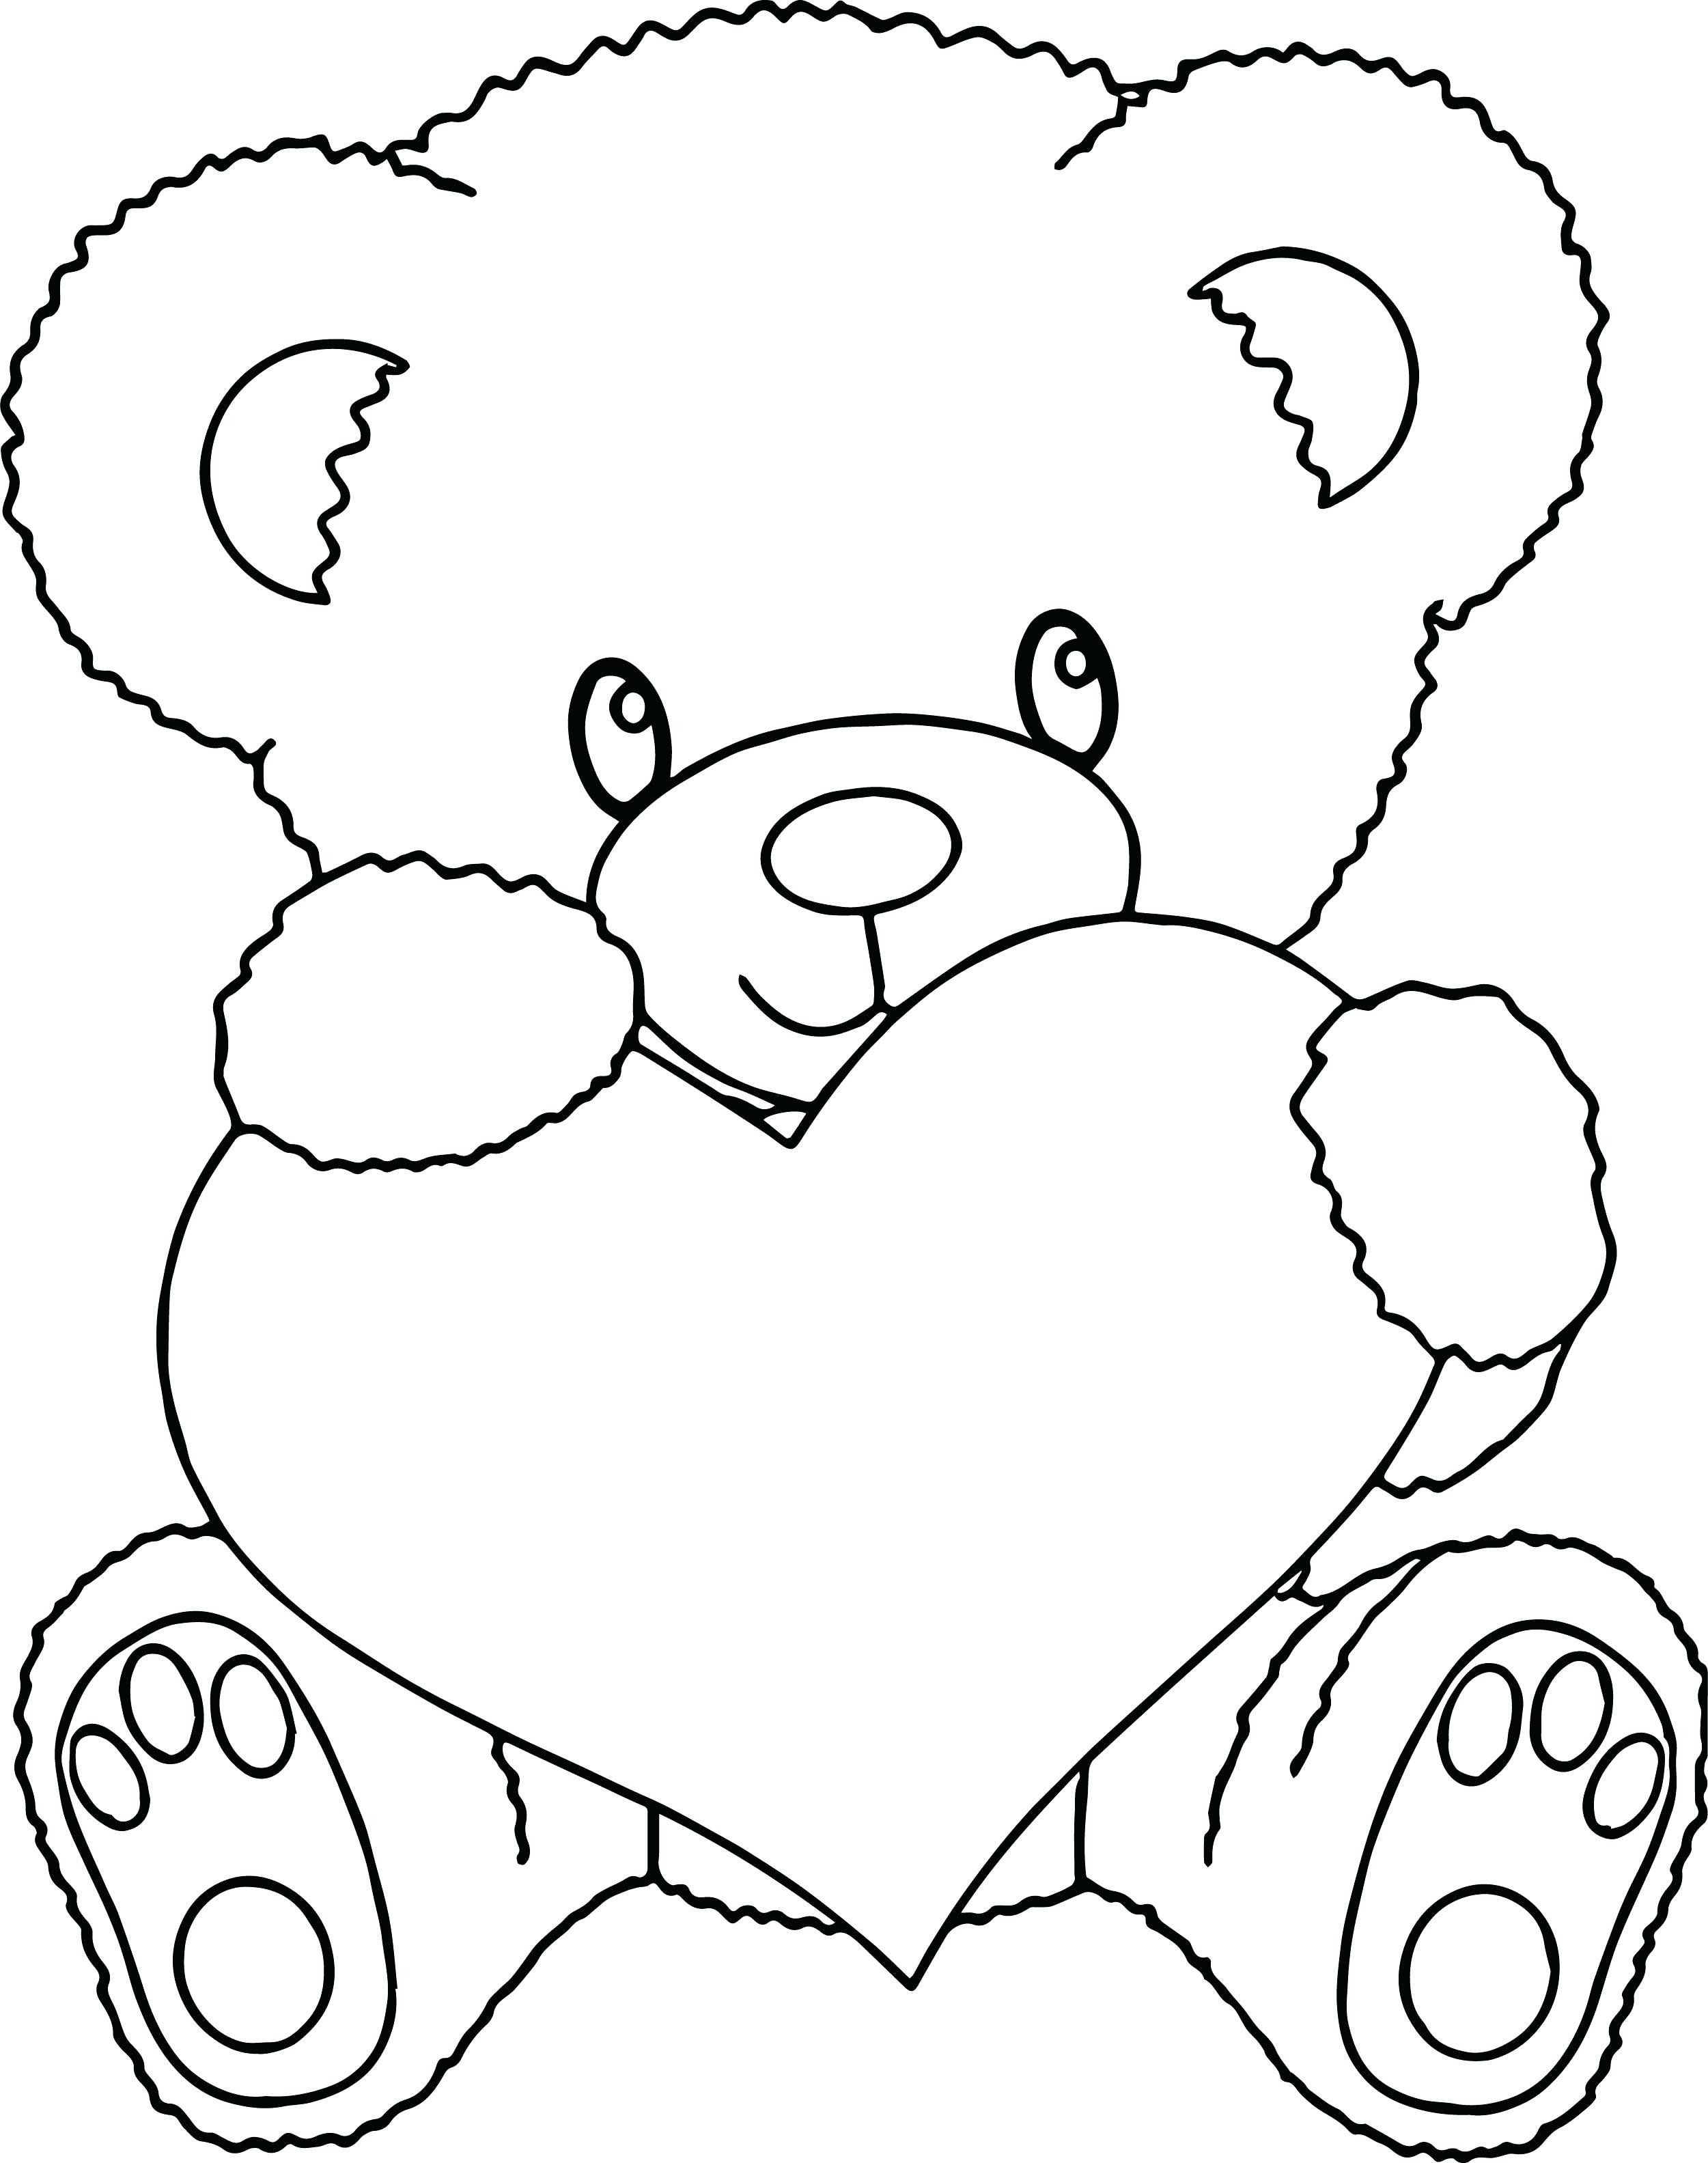 Teddy Bear Coloring Pages Inspirational Good Luck Care Bear